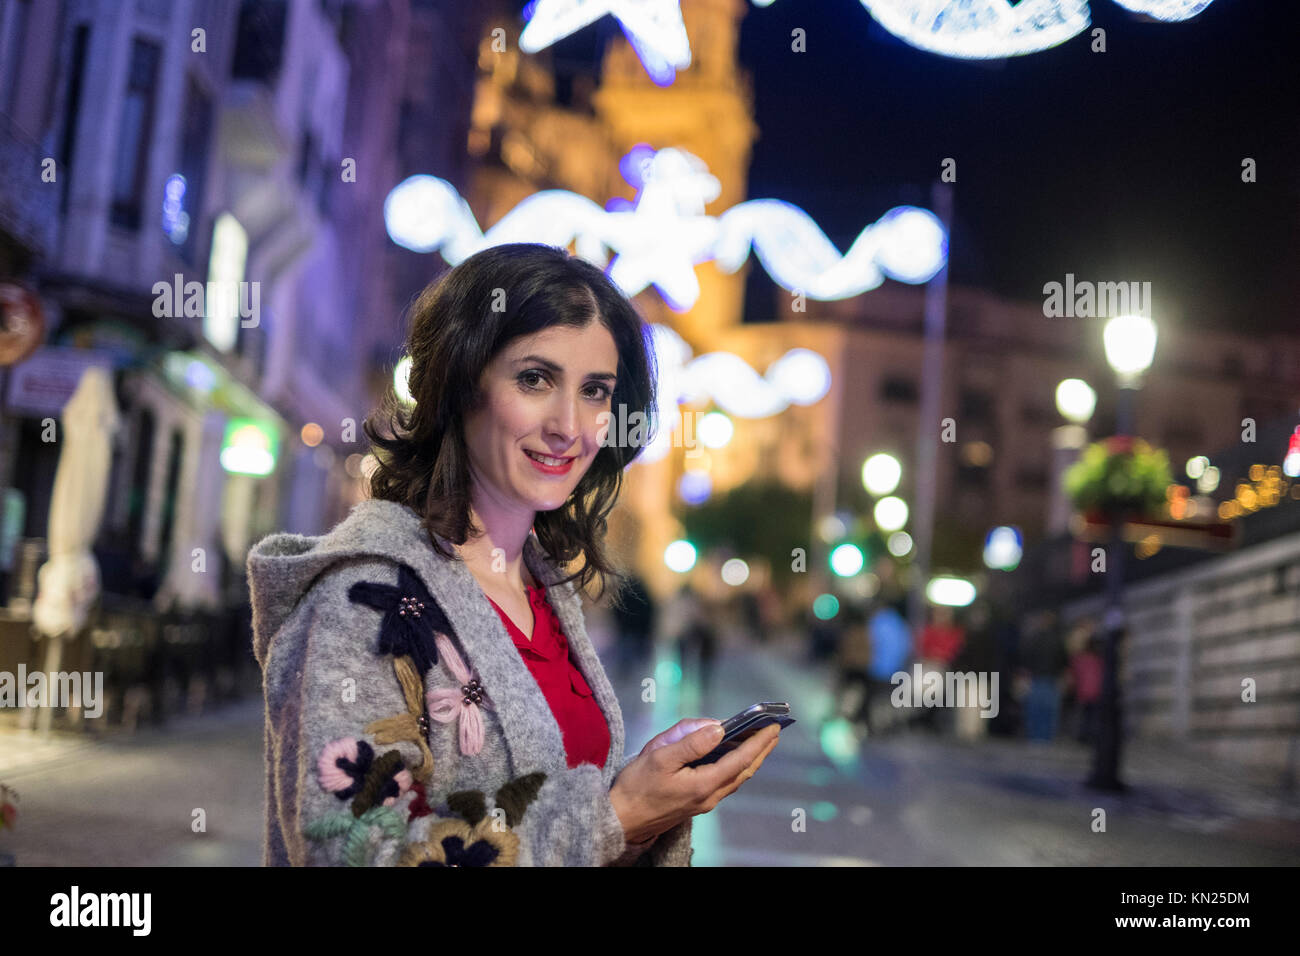 Woman sending and looking social network messages in winter christmas images in the city - Stock Image